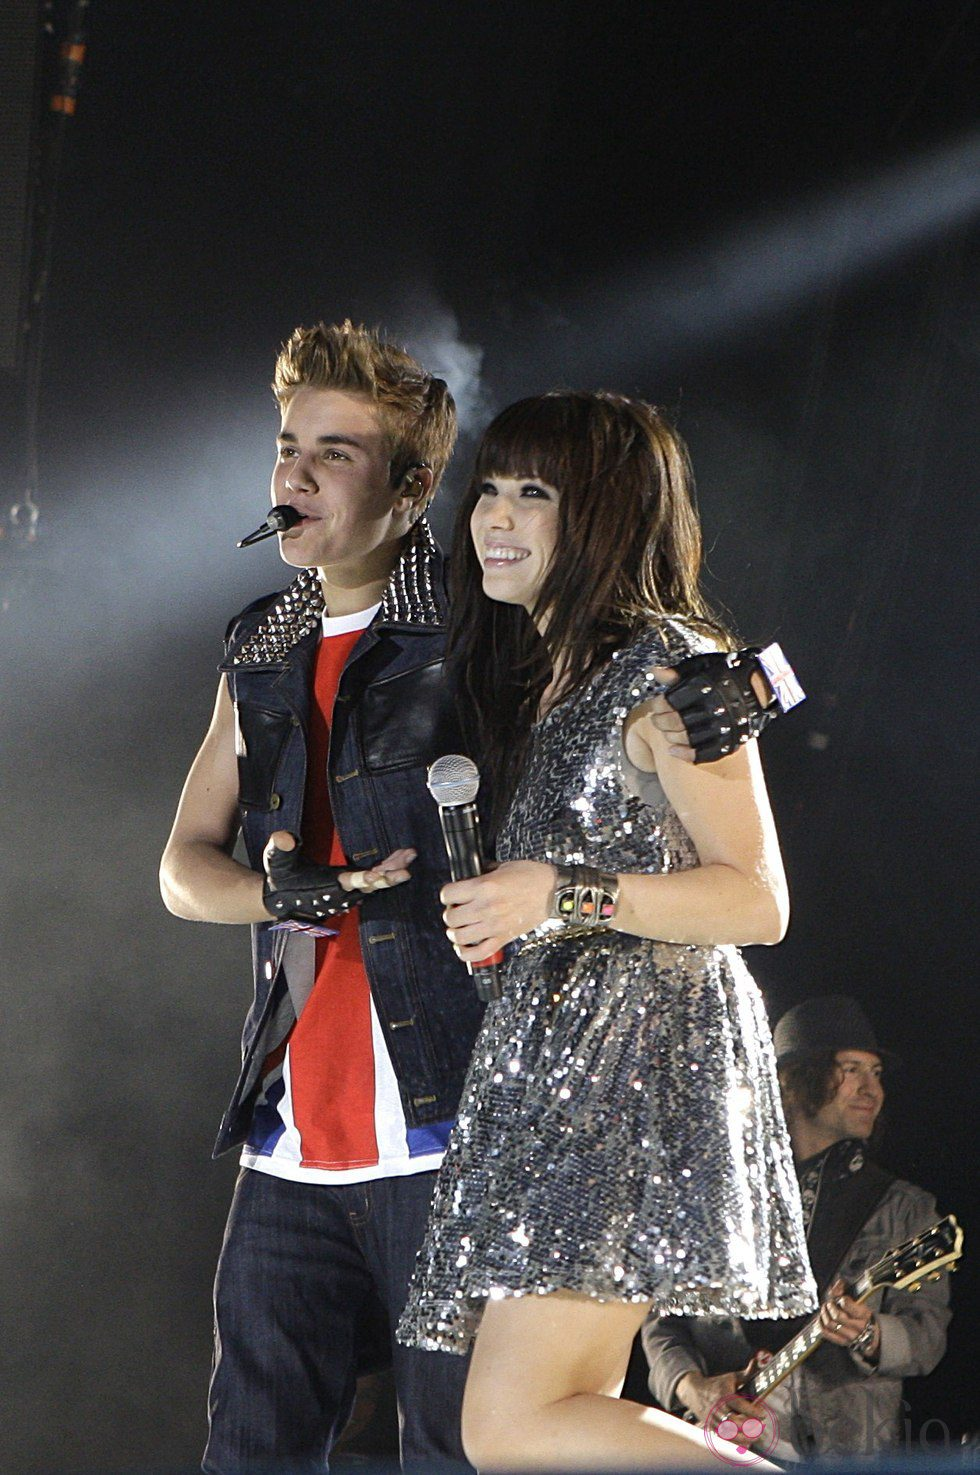 is carly rae jepsen and justin bieber dating